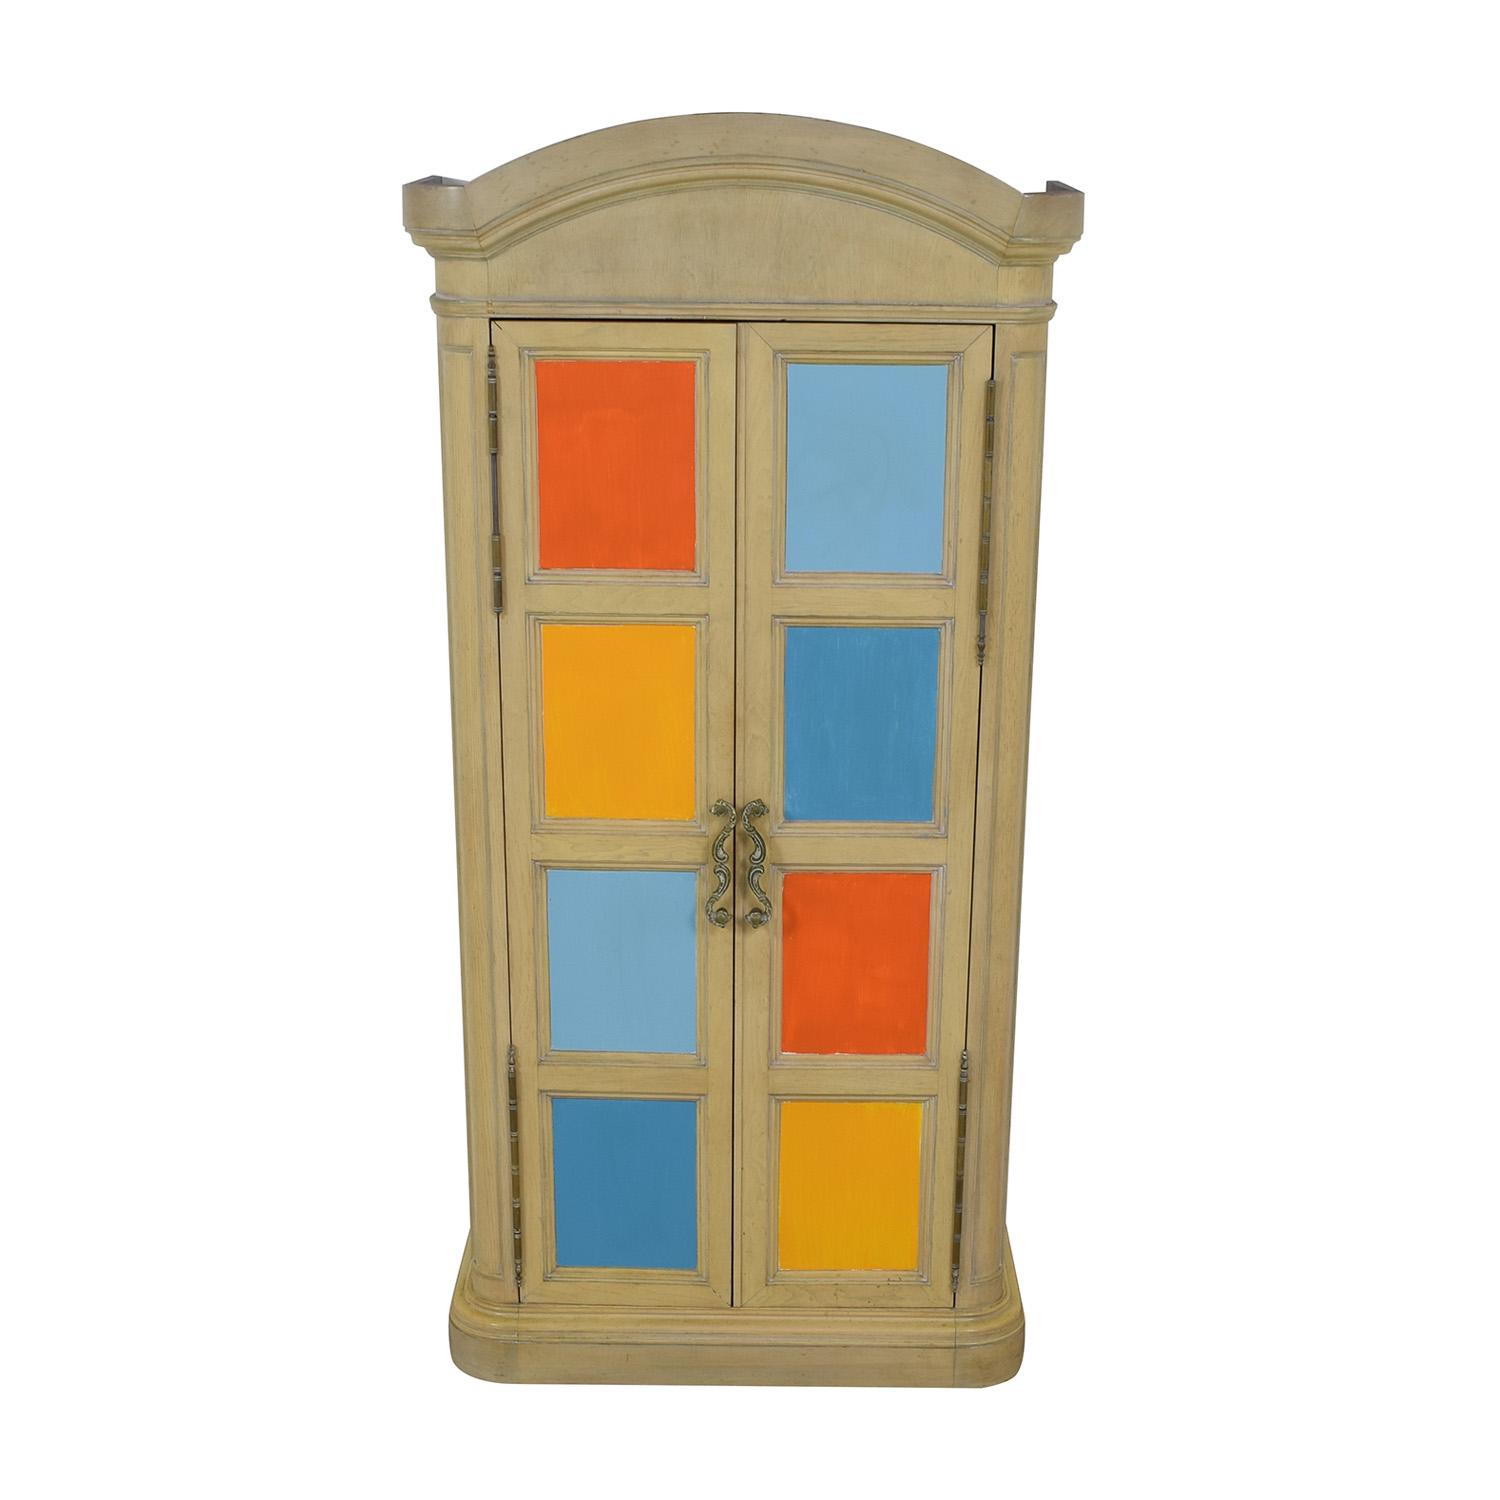 Drexel Drexel Painted Country Fresh Wood Armoire second hand